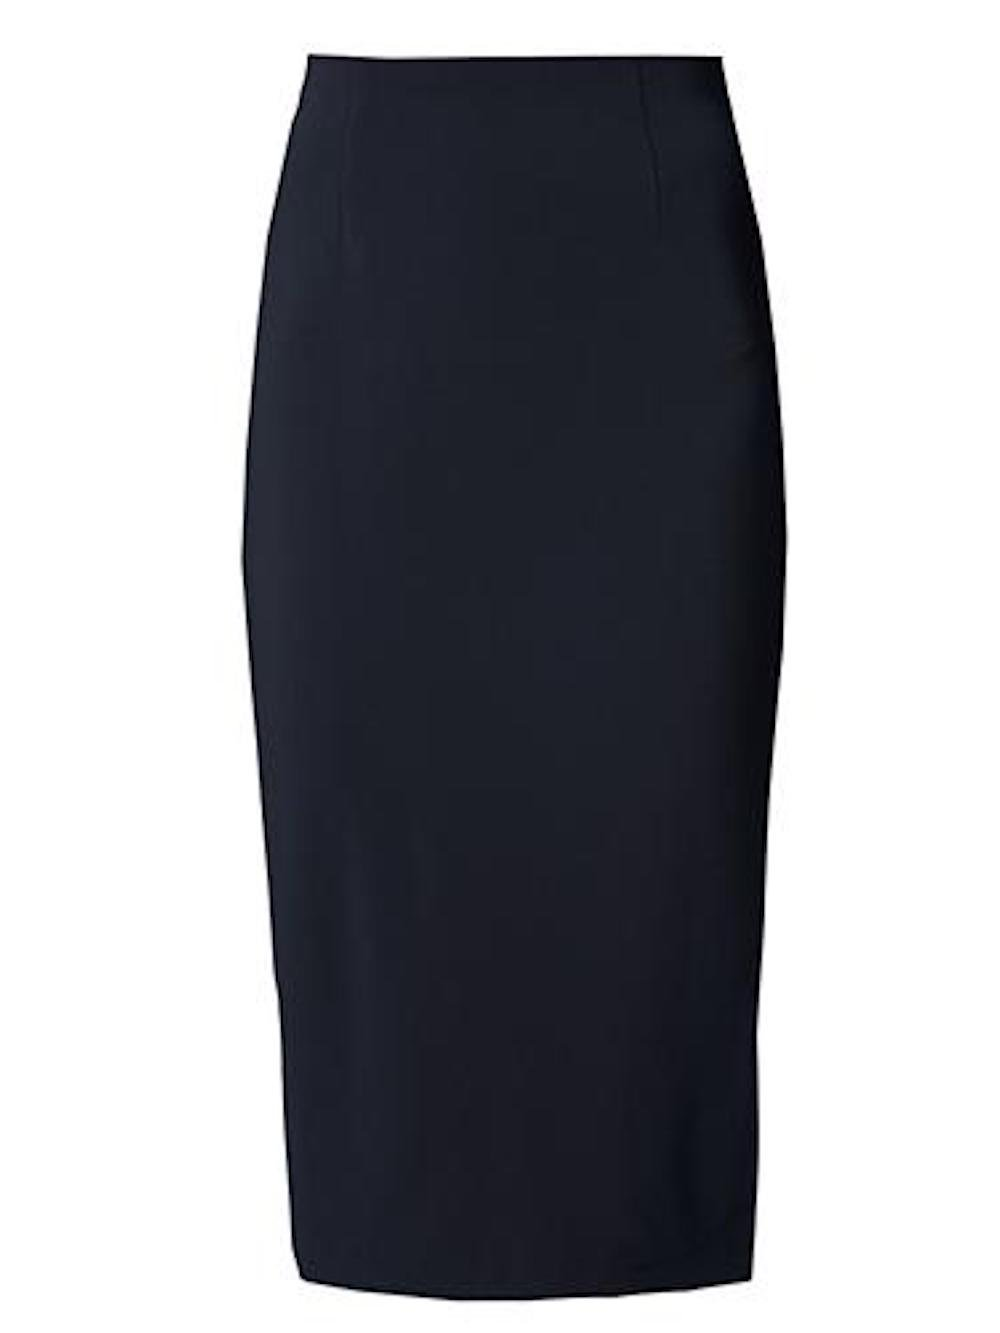 Wolford Christie Knee High Skirt, Size 38